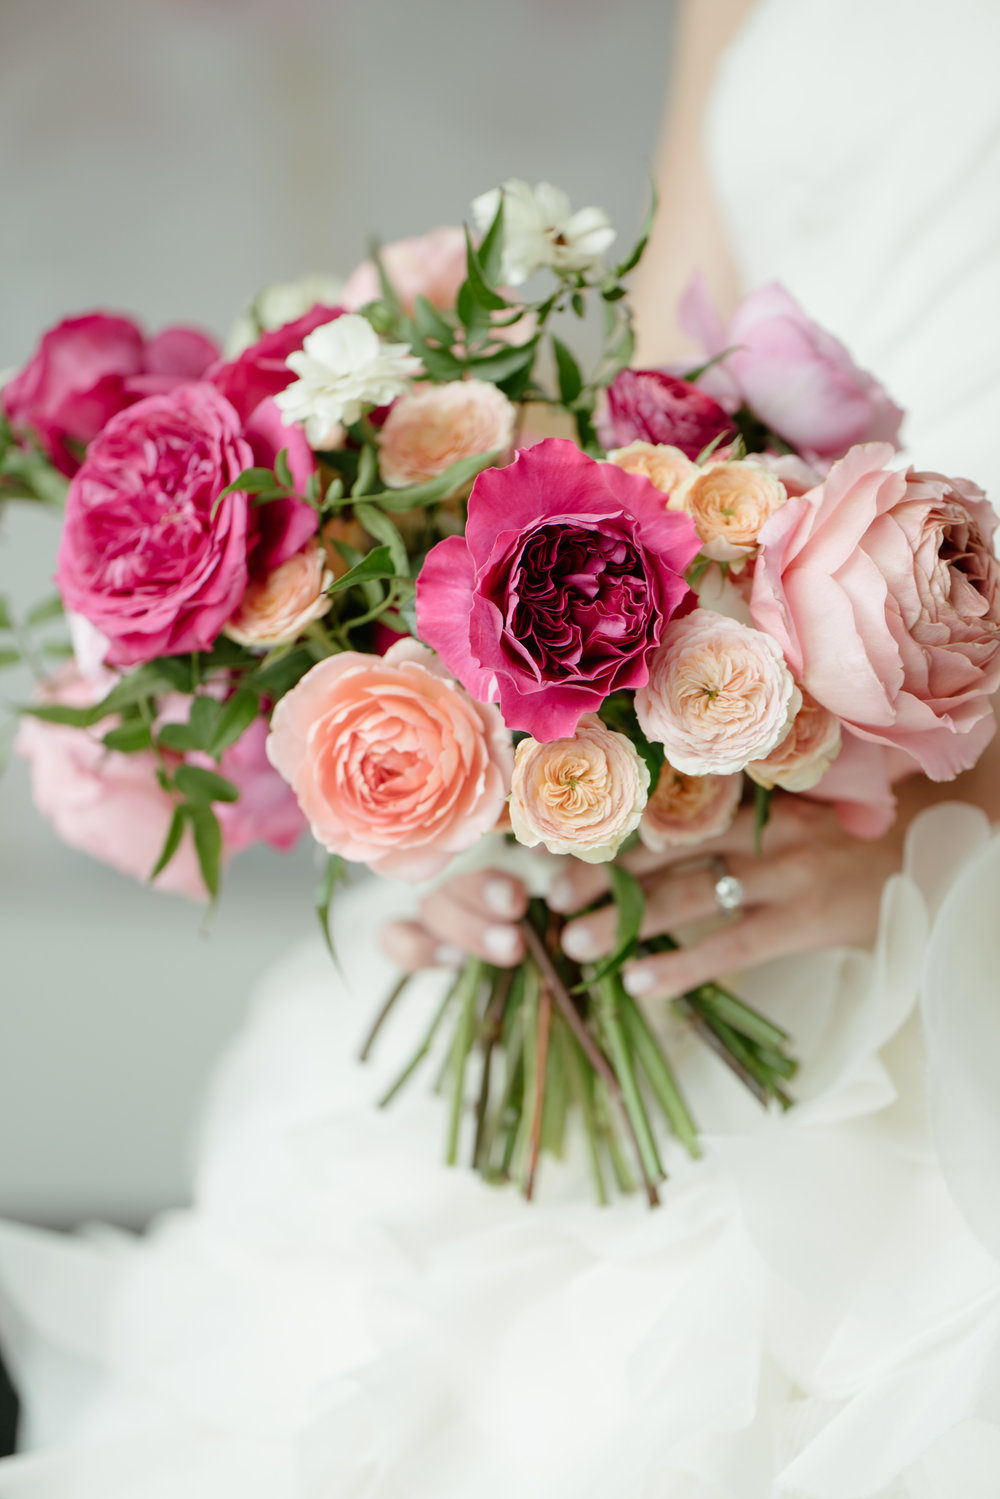 Garden style bridal bouquet with coral, pink, blush and white garden roses. Maxit Flower Design's work captured by Adam Nyholt